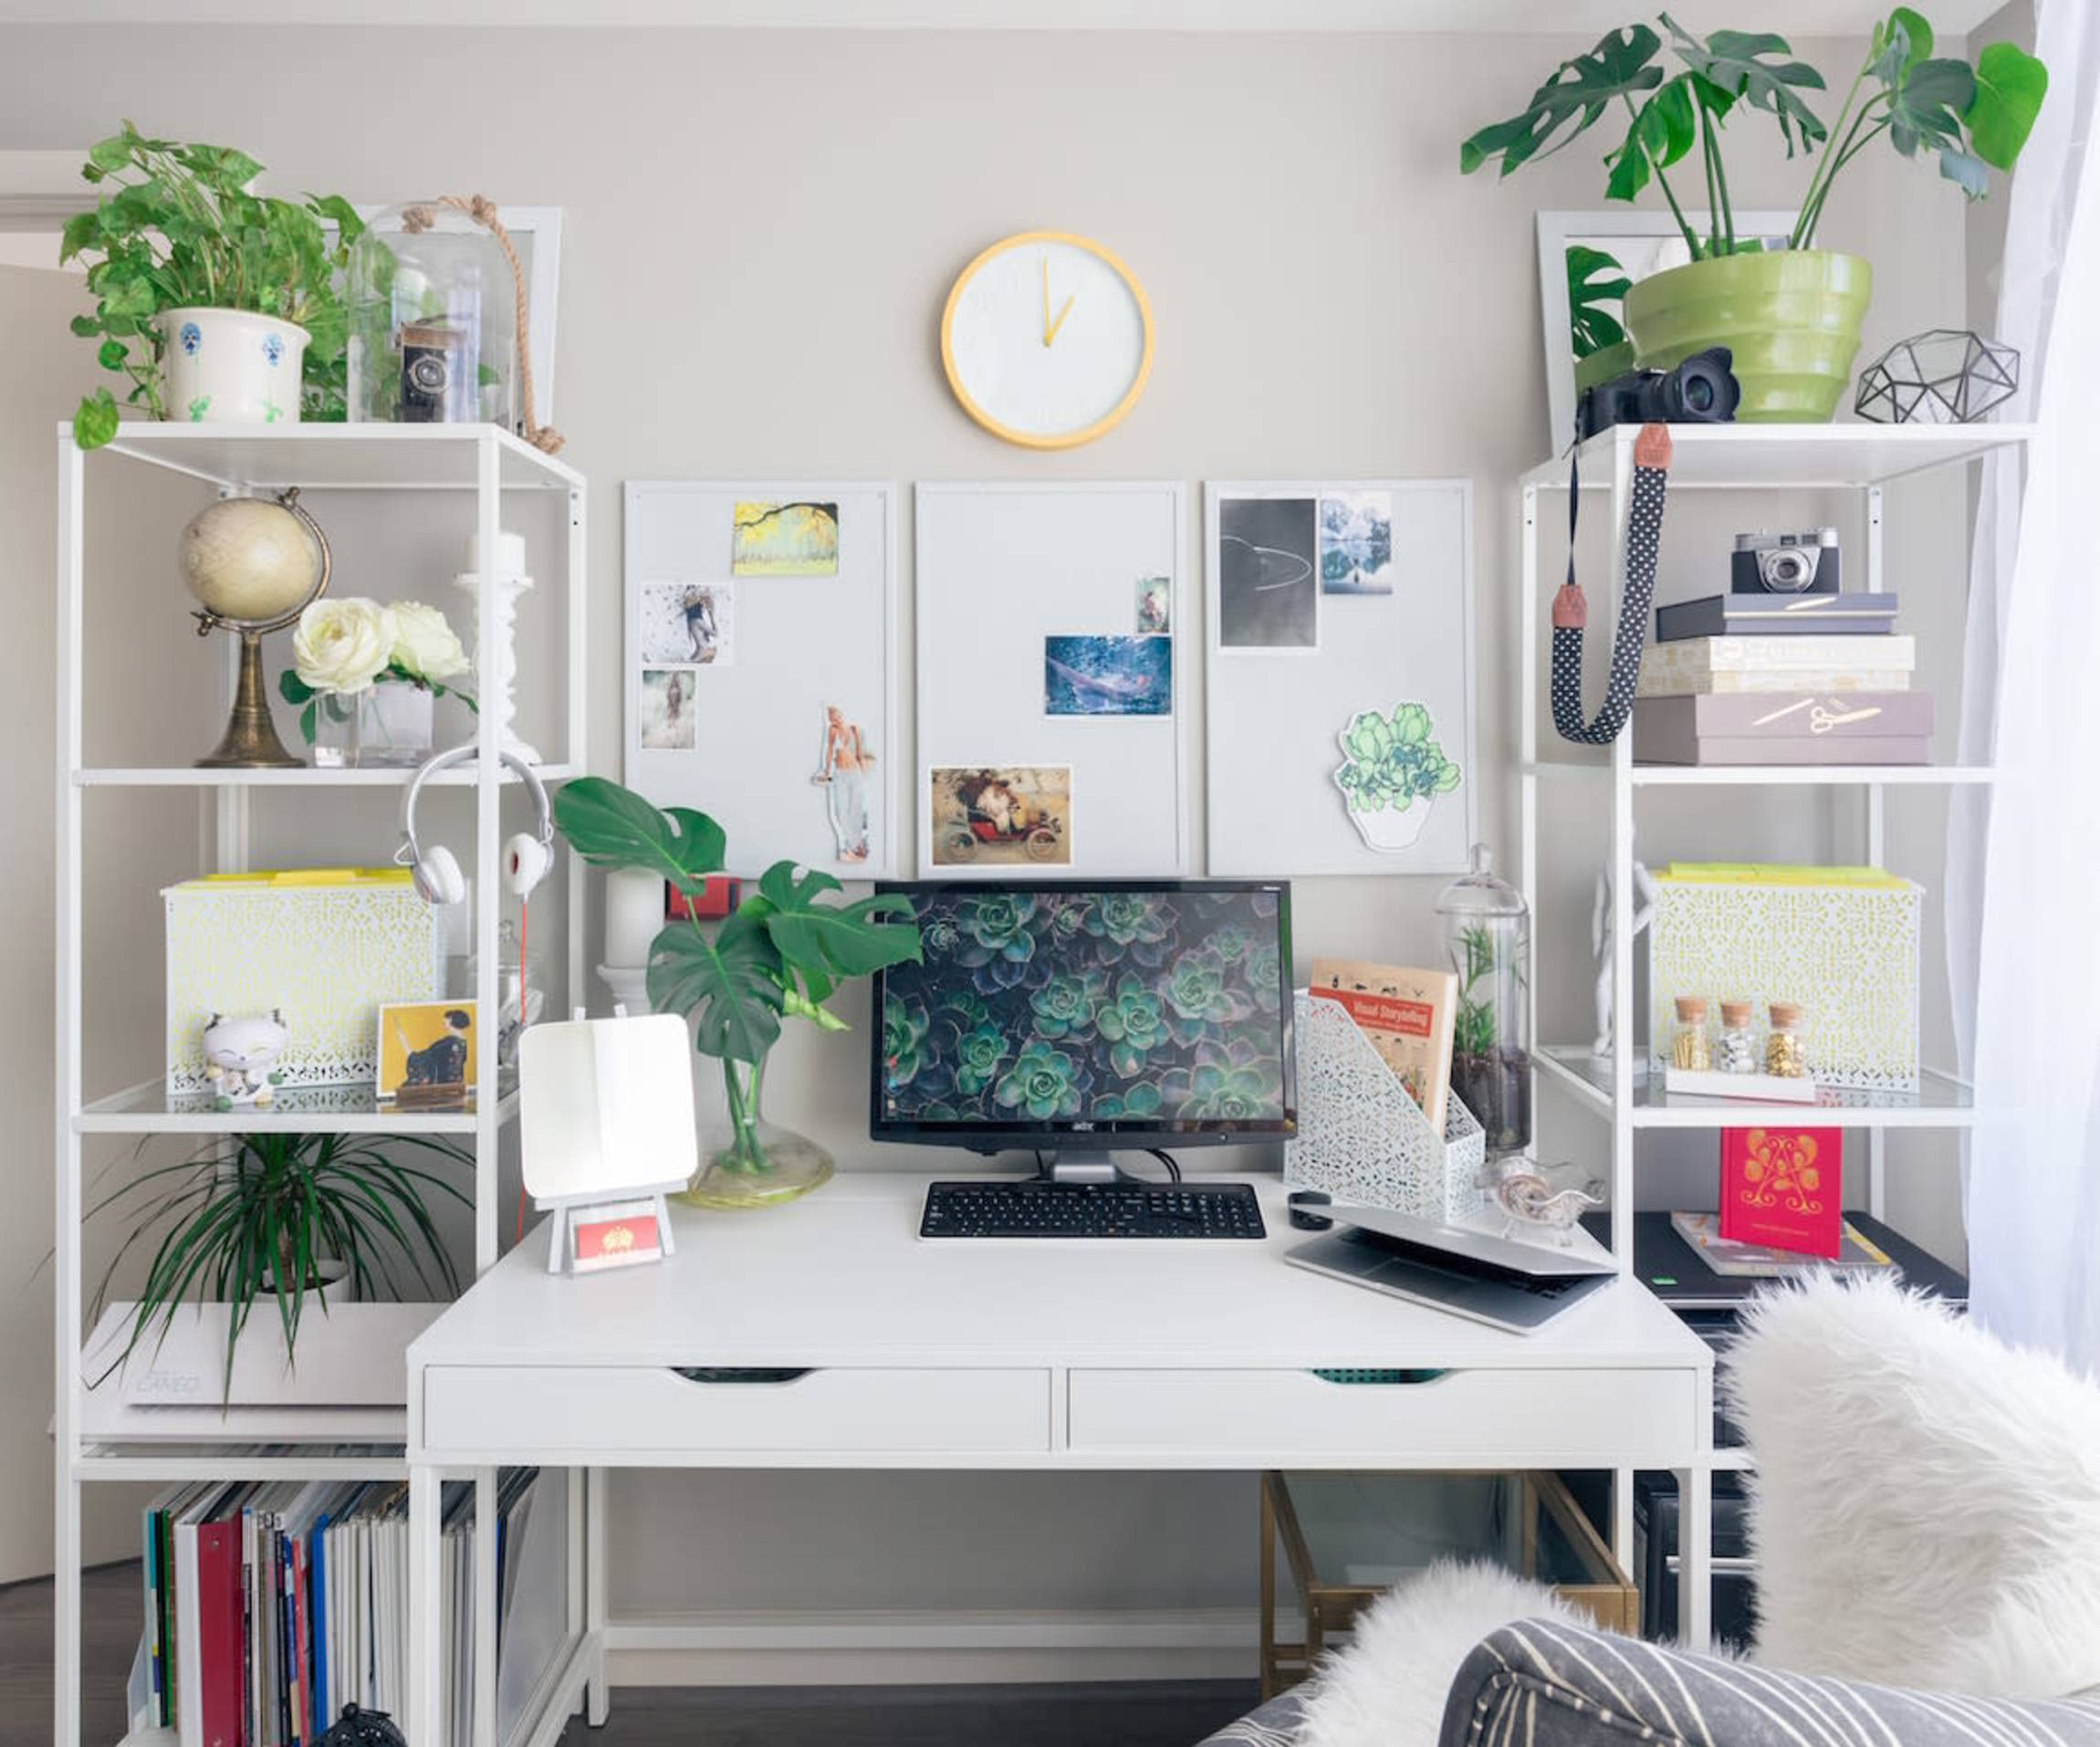 Corona-guide: Top tips on preparing your home office